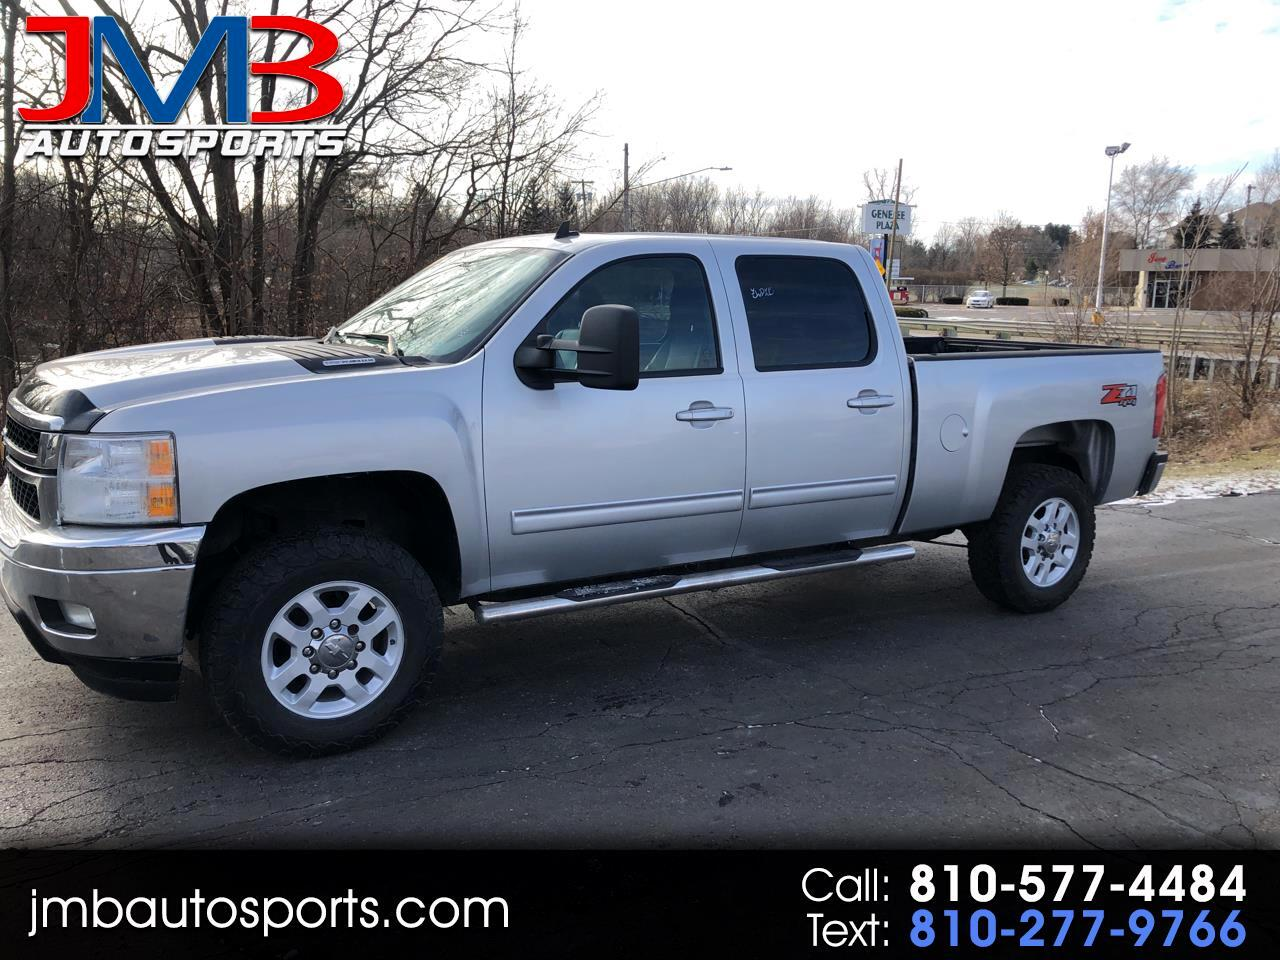 Chevrolet Silverado 2500HD LTZ Crew Cab Short Box 4WD 2012